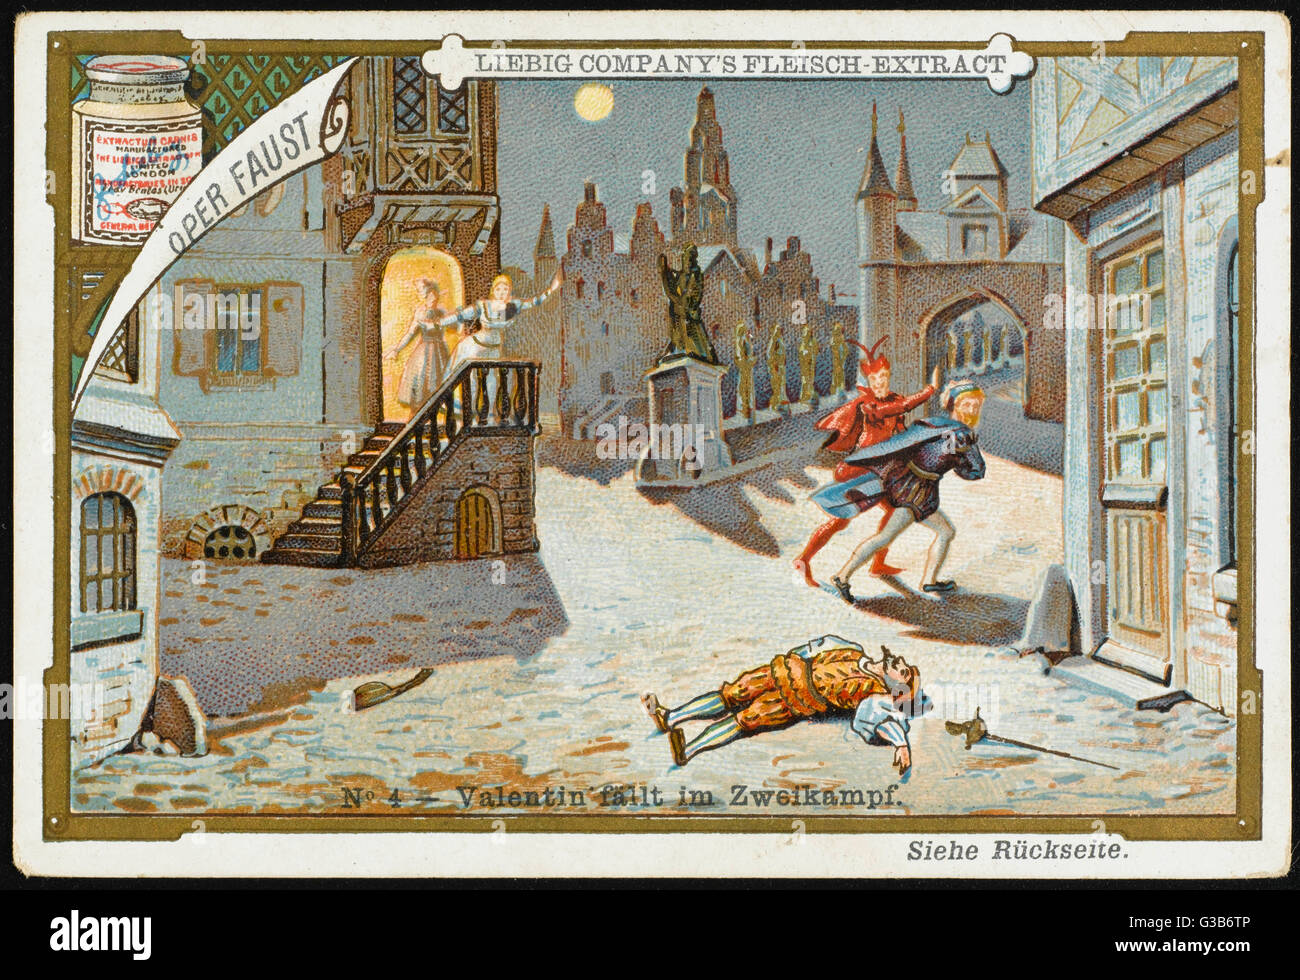 'FAUST' Faust fights Marguerite's  brother Valentin, and  Mephistopheles directs a fatal  stroke.   - Stock Image